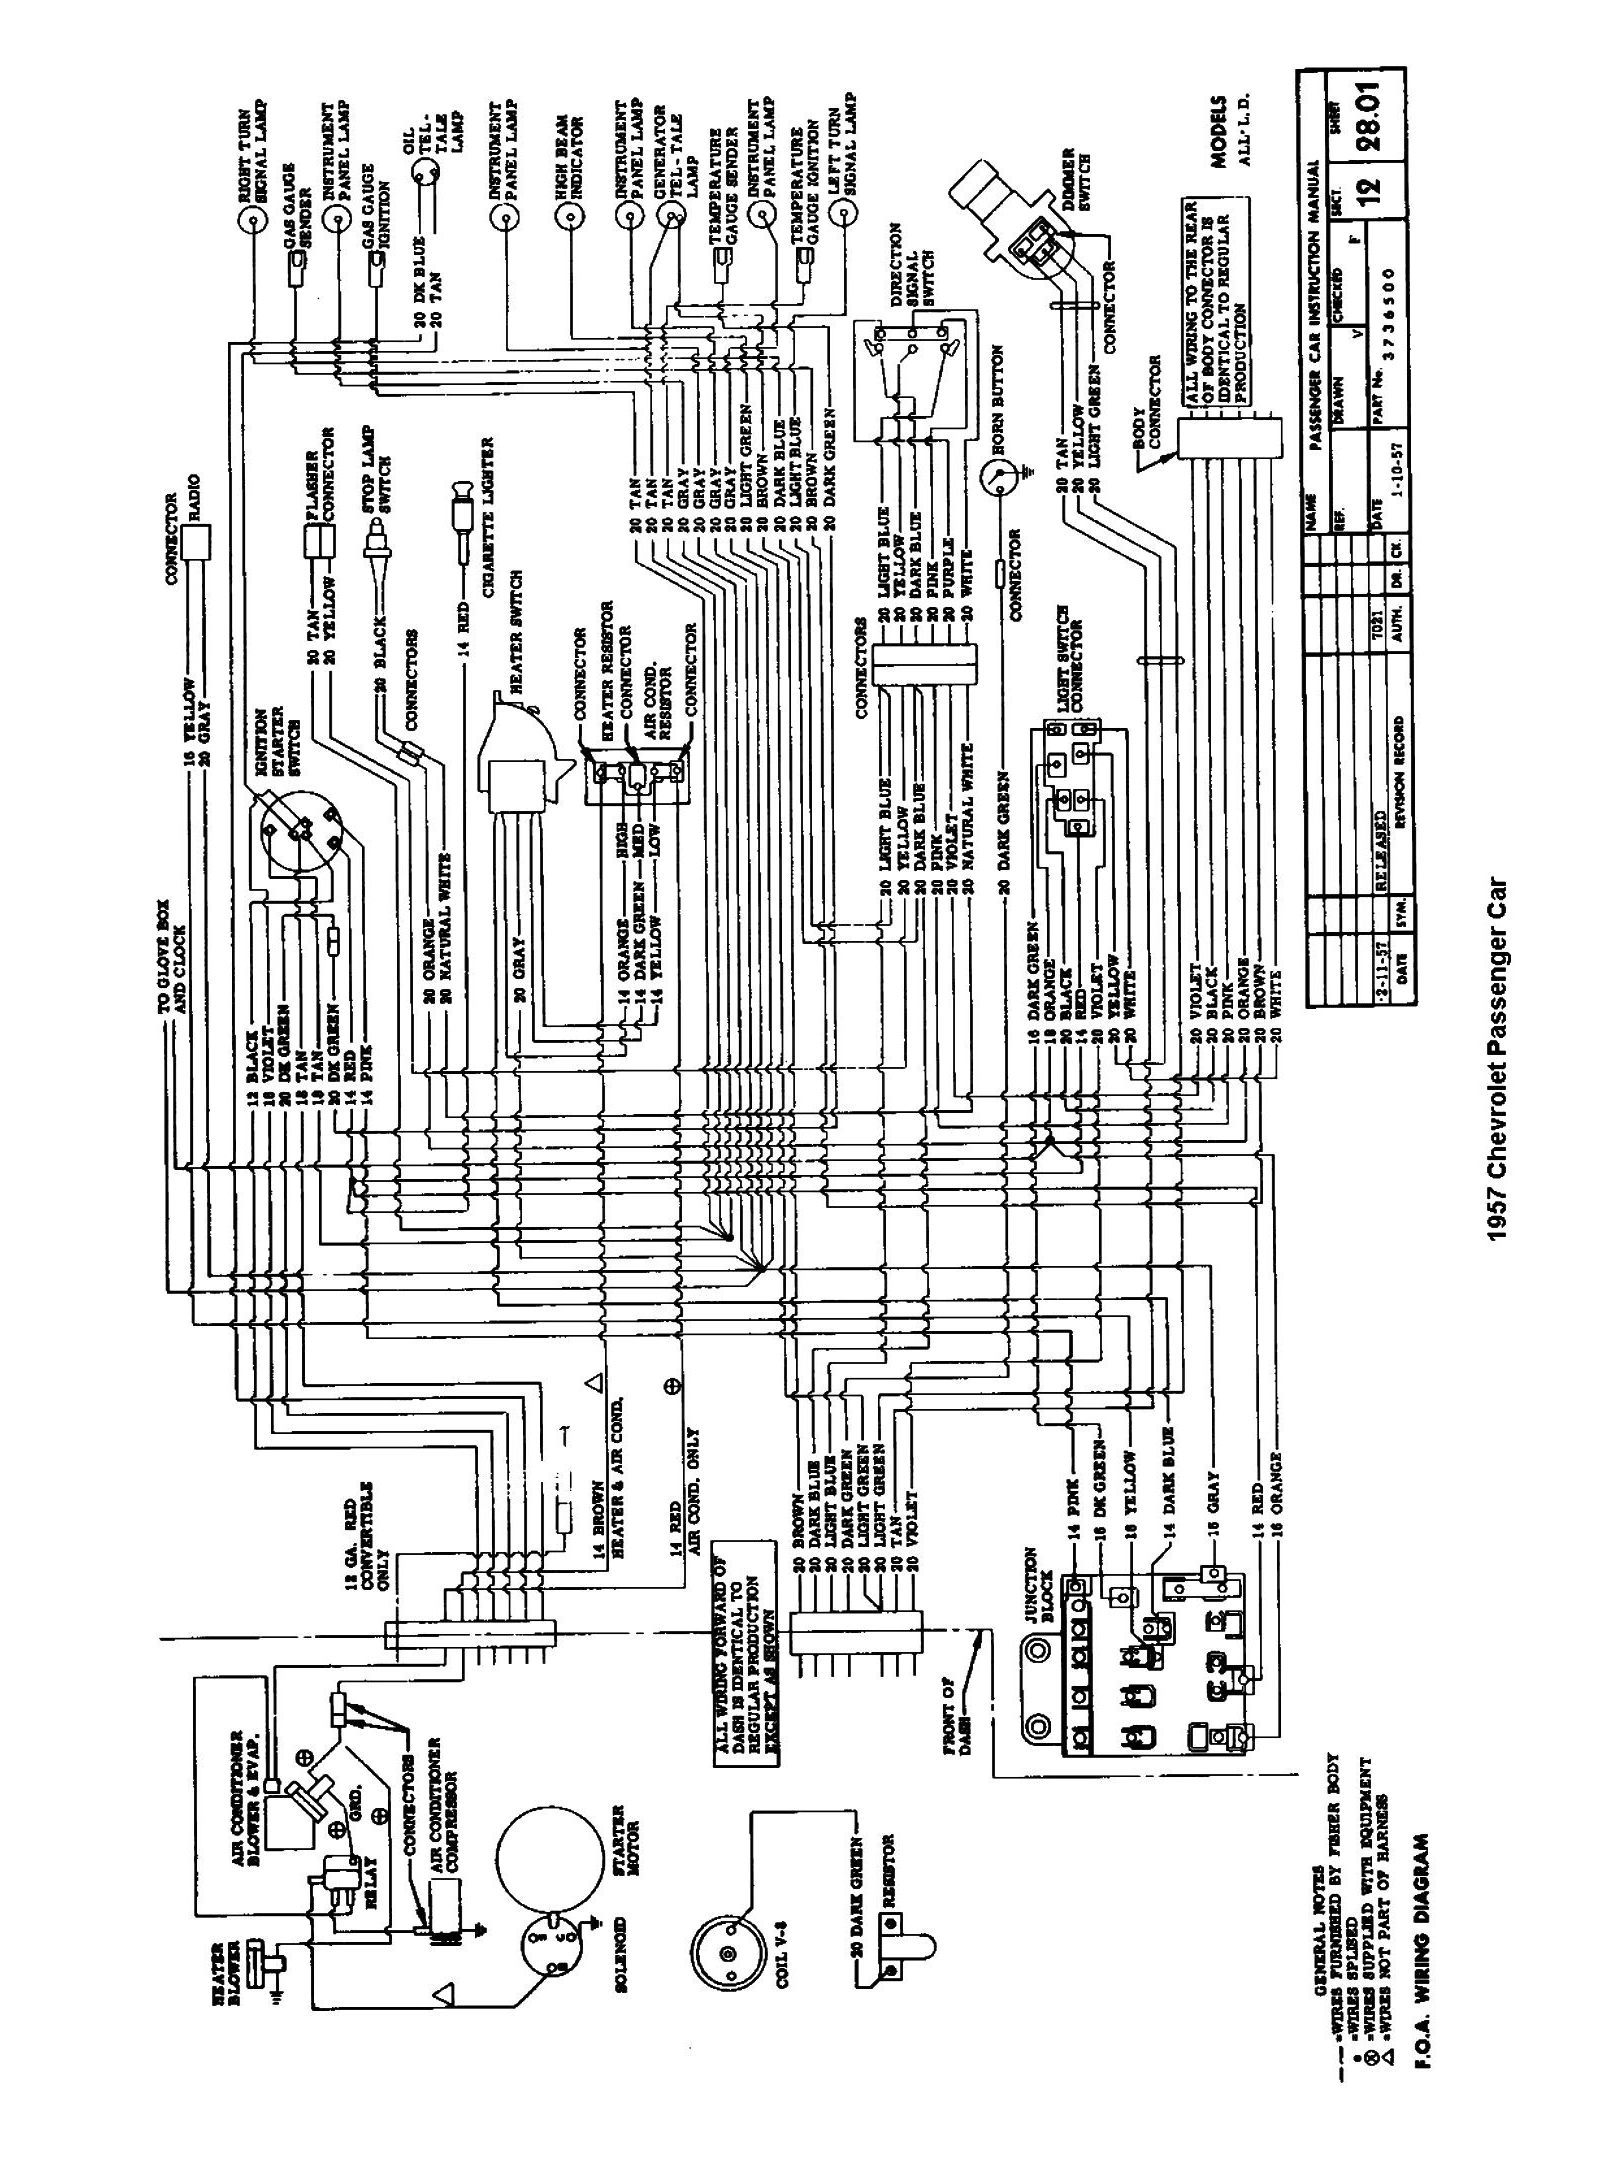 chevy wiring diagrams rh chevy oldcarmanualproject com 1946 Chevy Truck Wiring  Diagram 1959 Chevy Truck Wiring Diagram